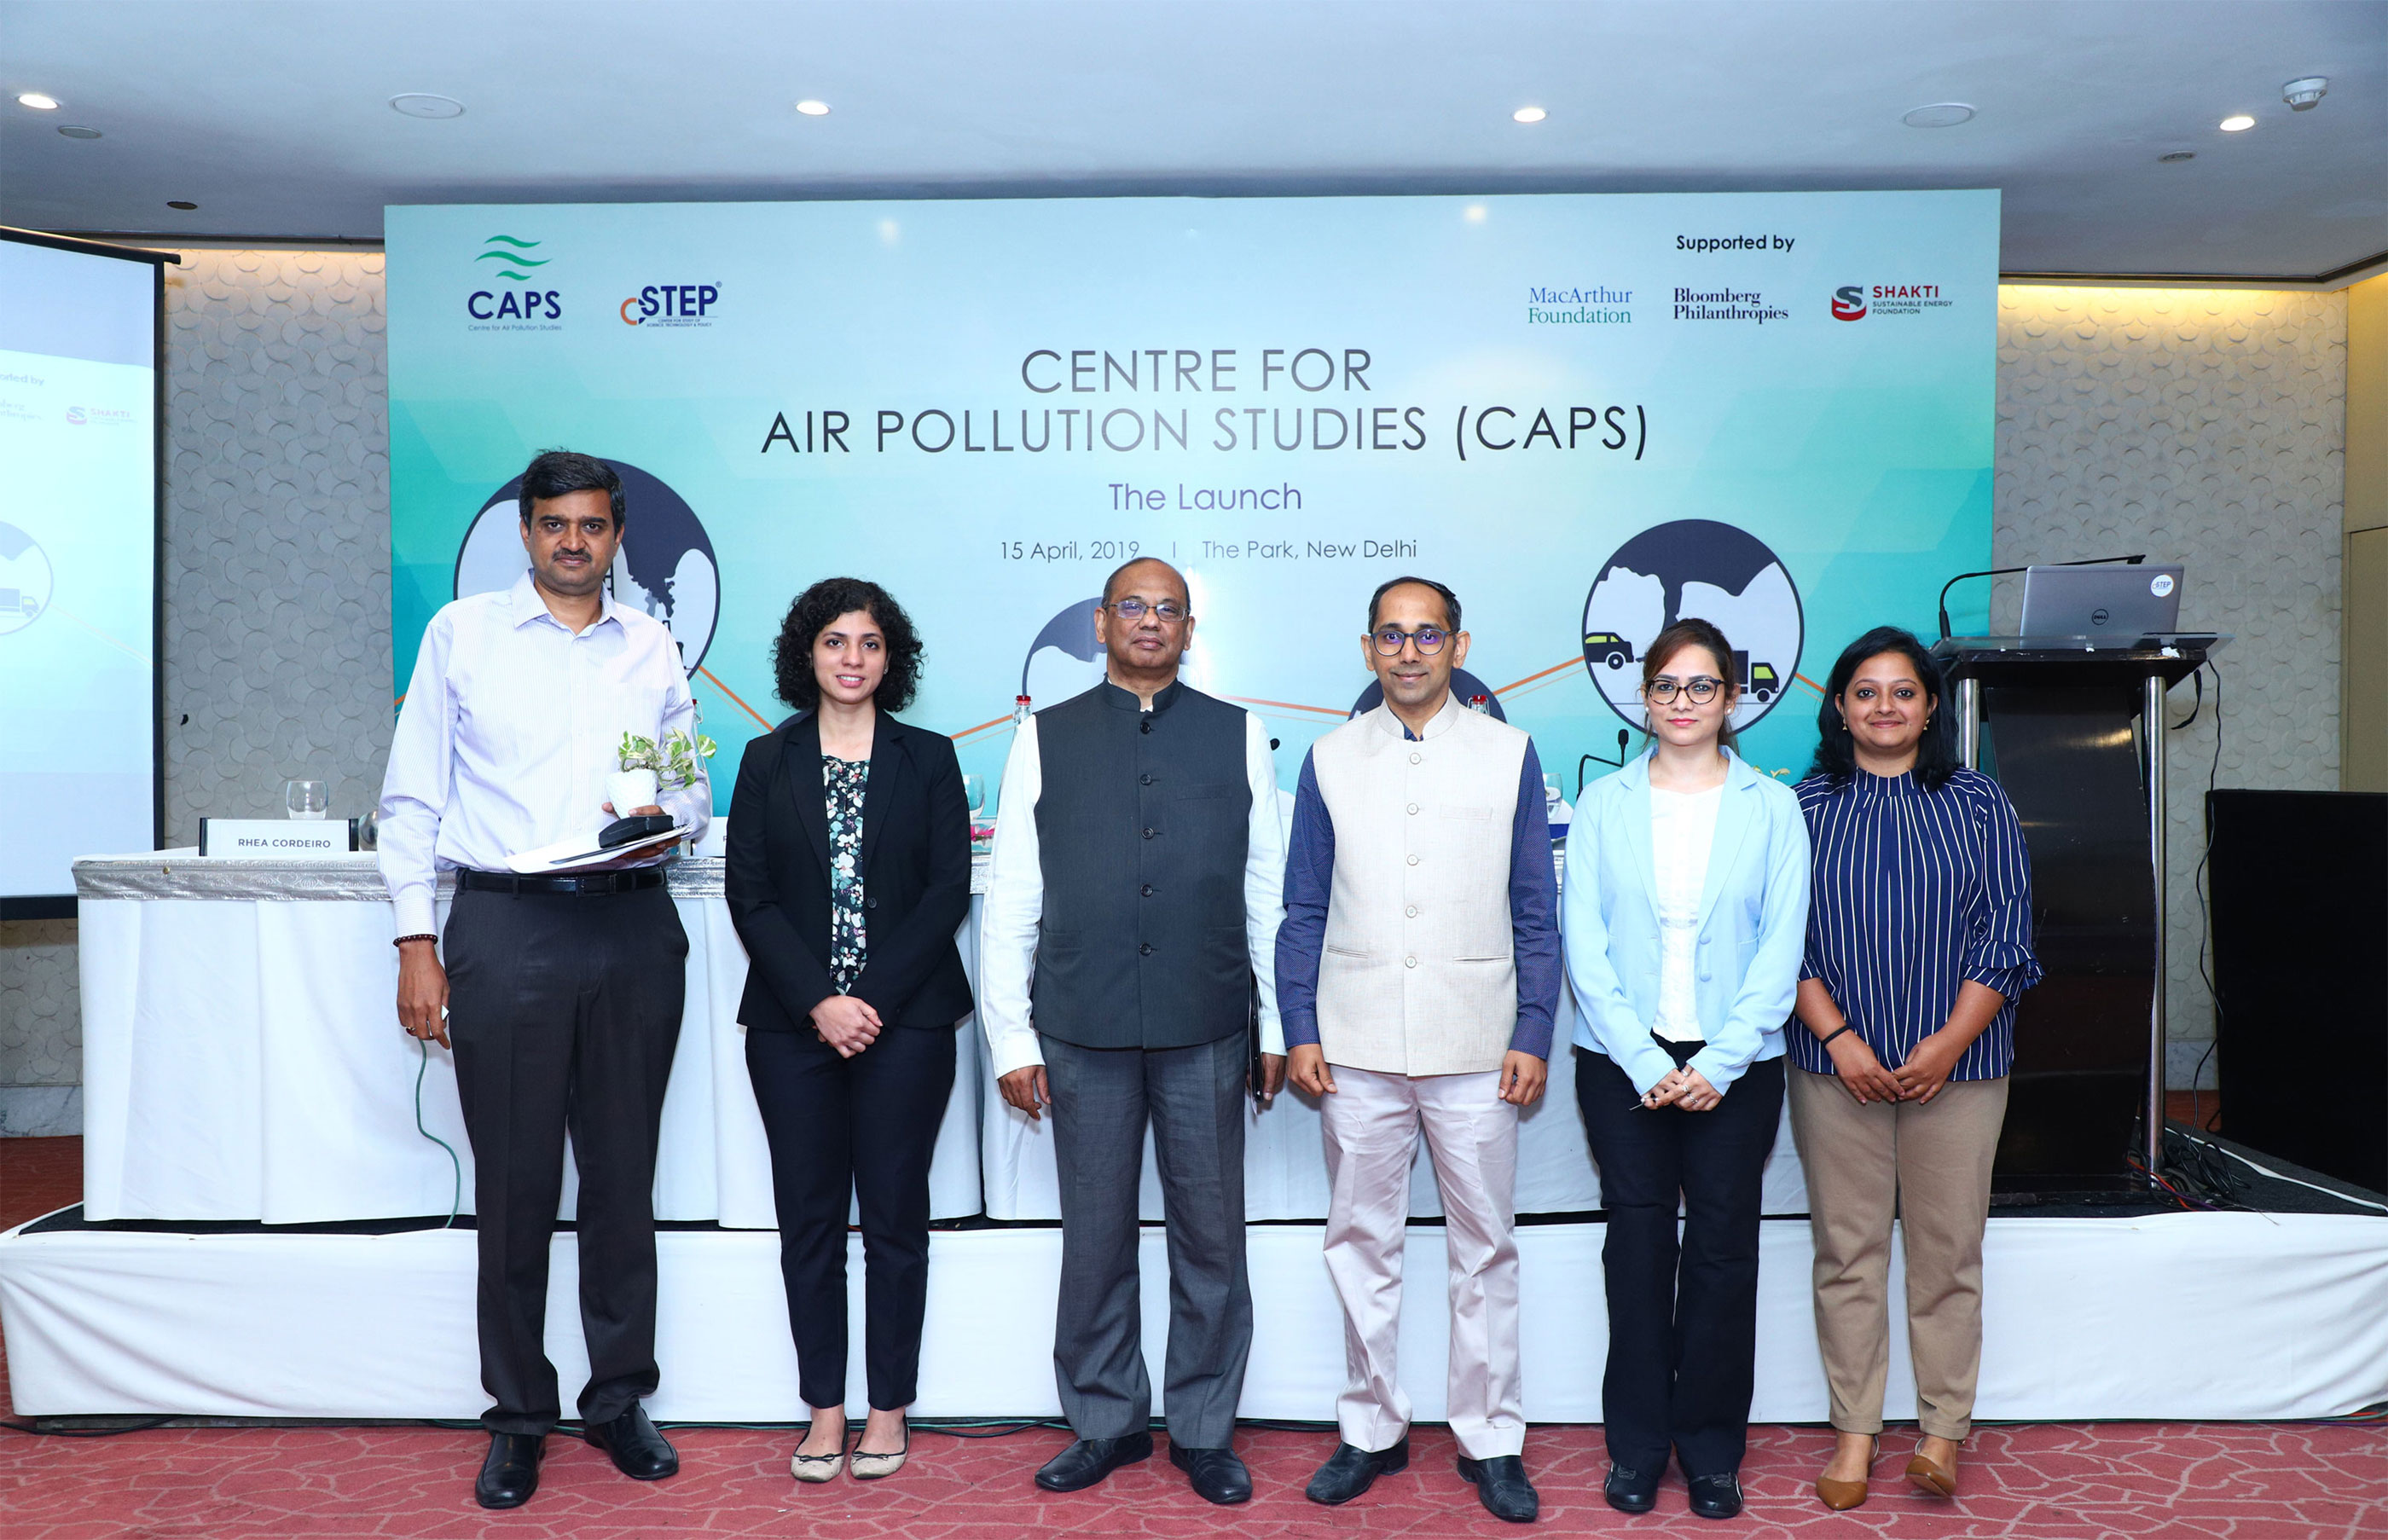 Launch Event of Centre for Air Pollution Studies (CAPS)